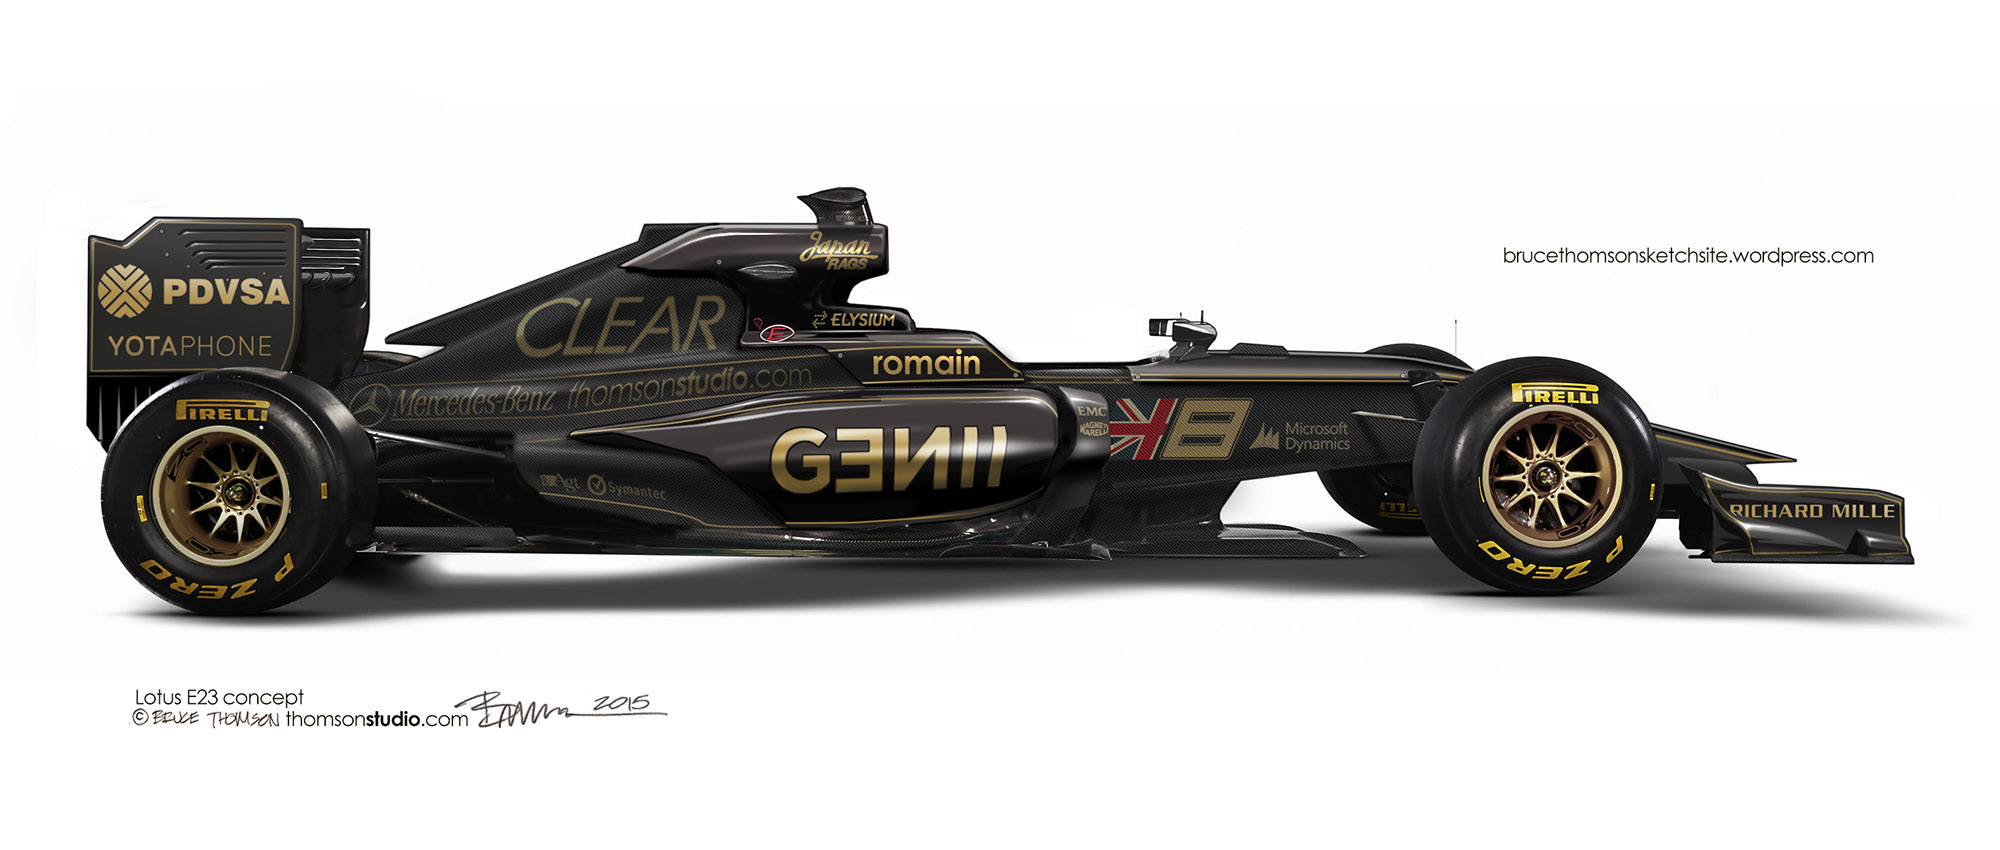 thomsonstudio_2015_lotus.jpg